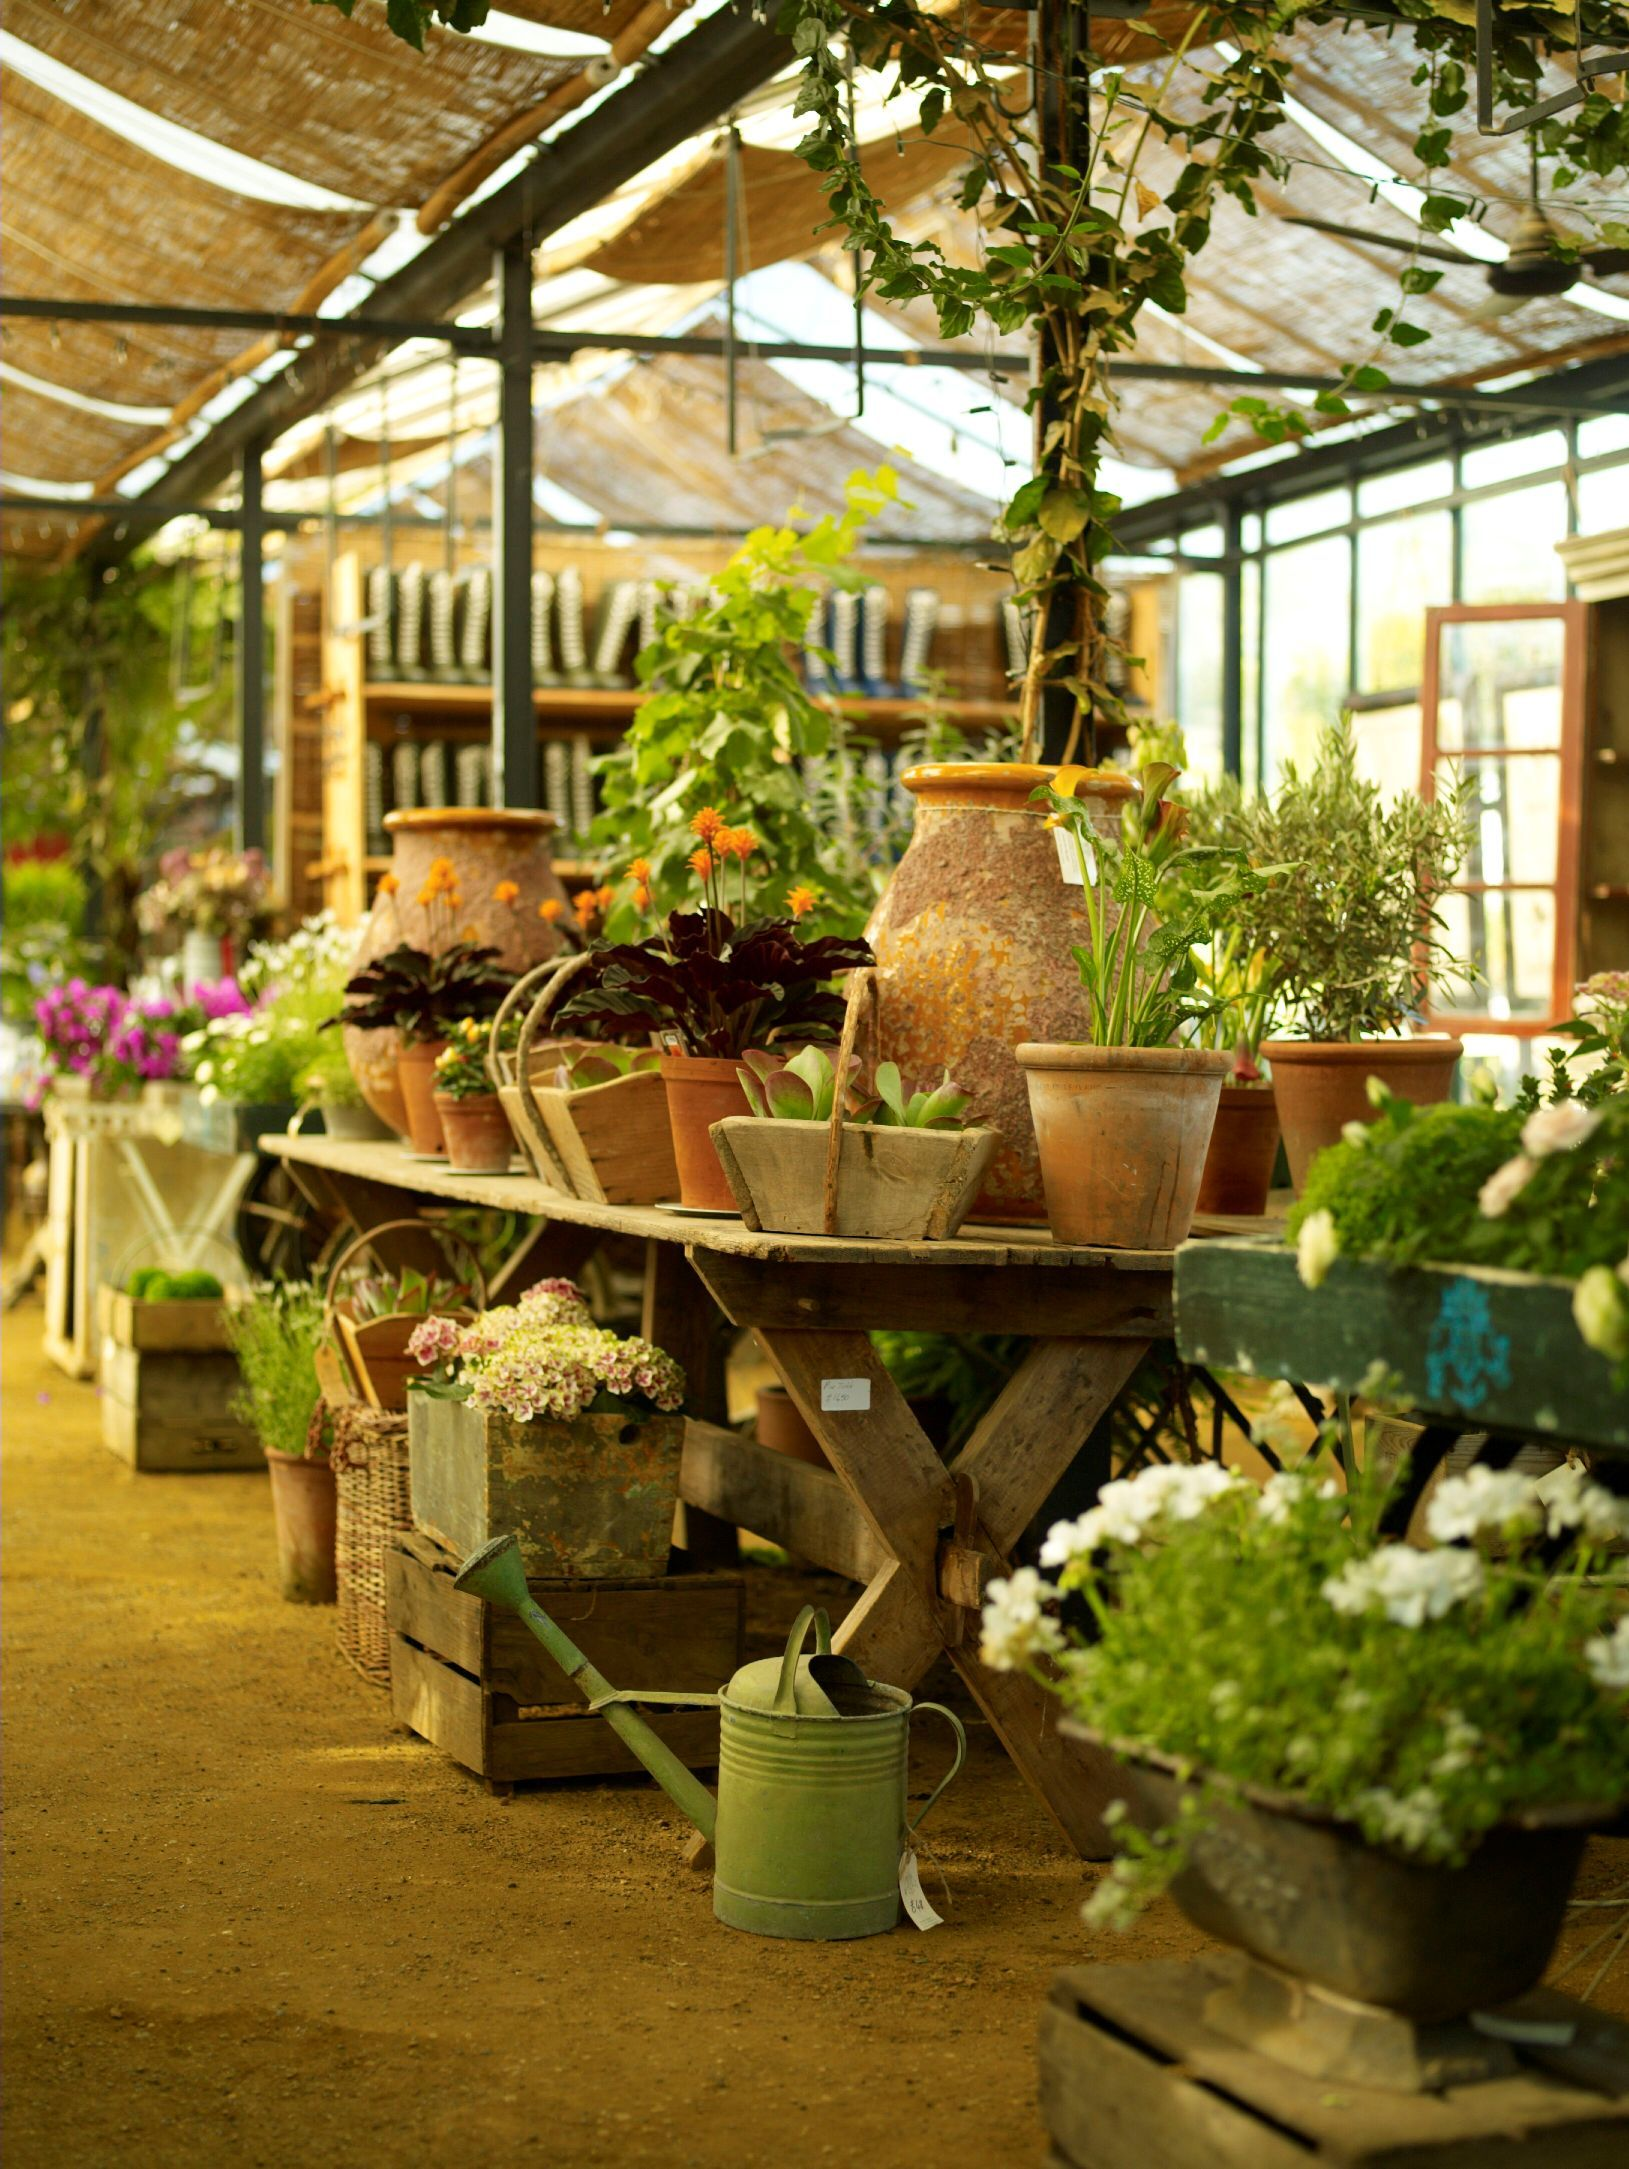 Petersham Nurseries Garden Center Displays Botanical Gardens